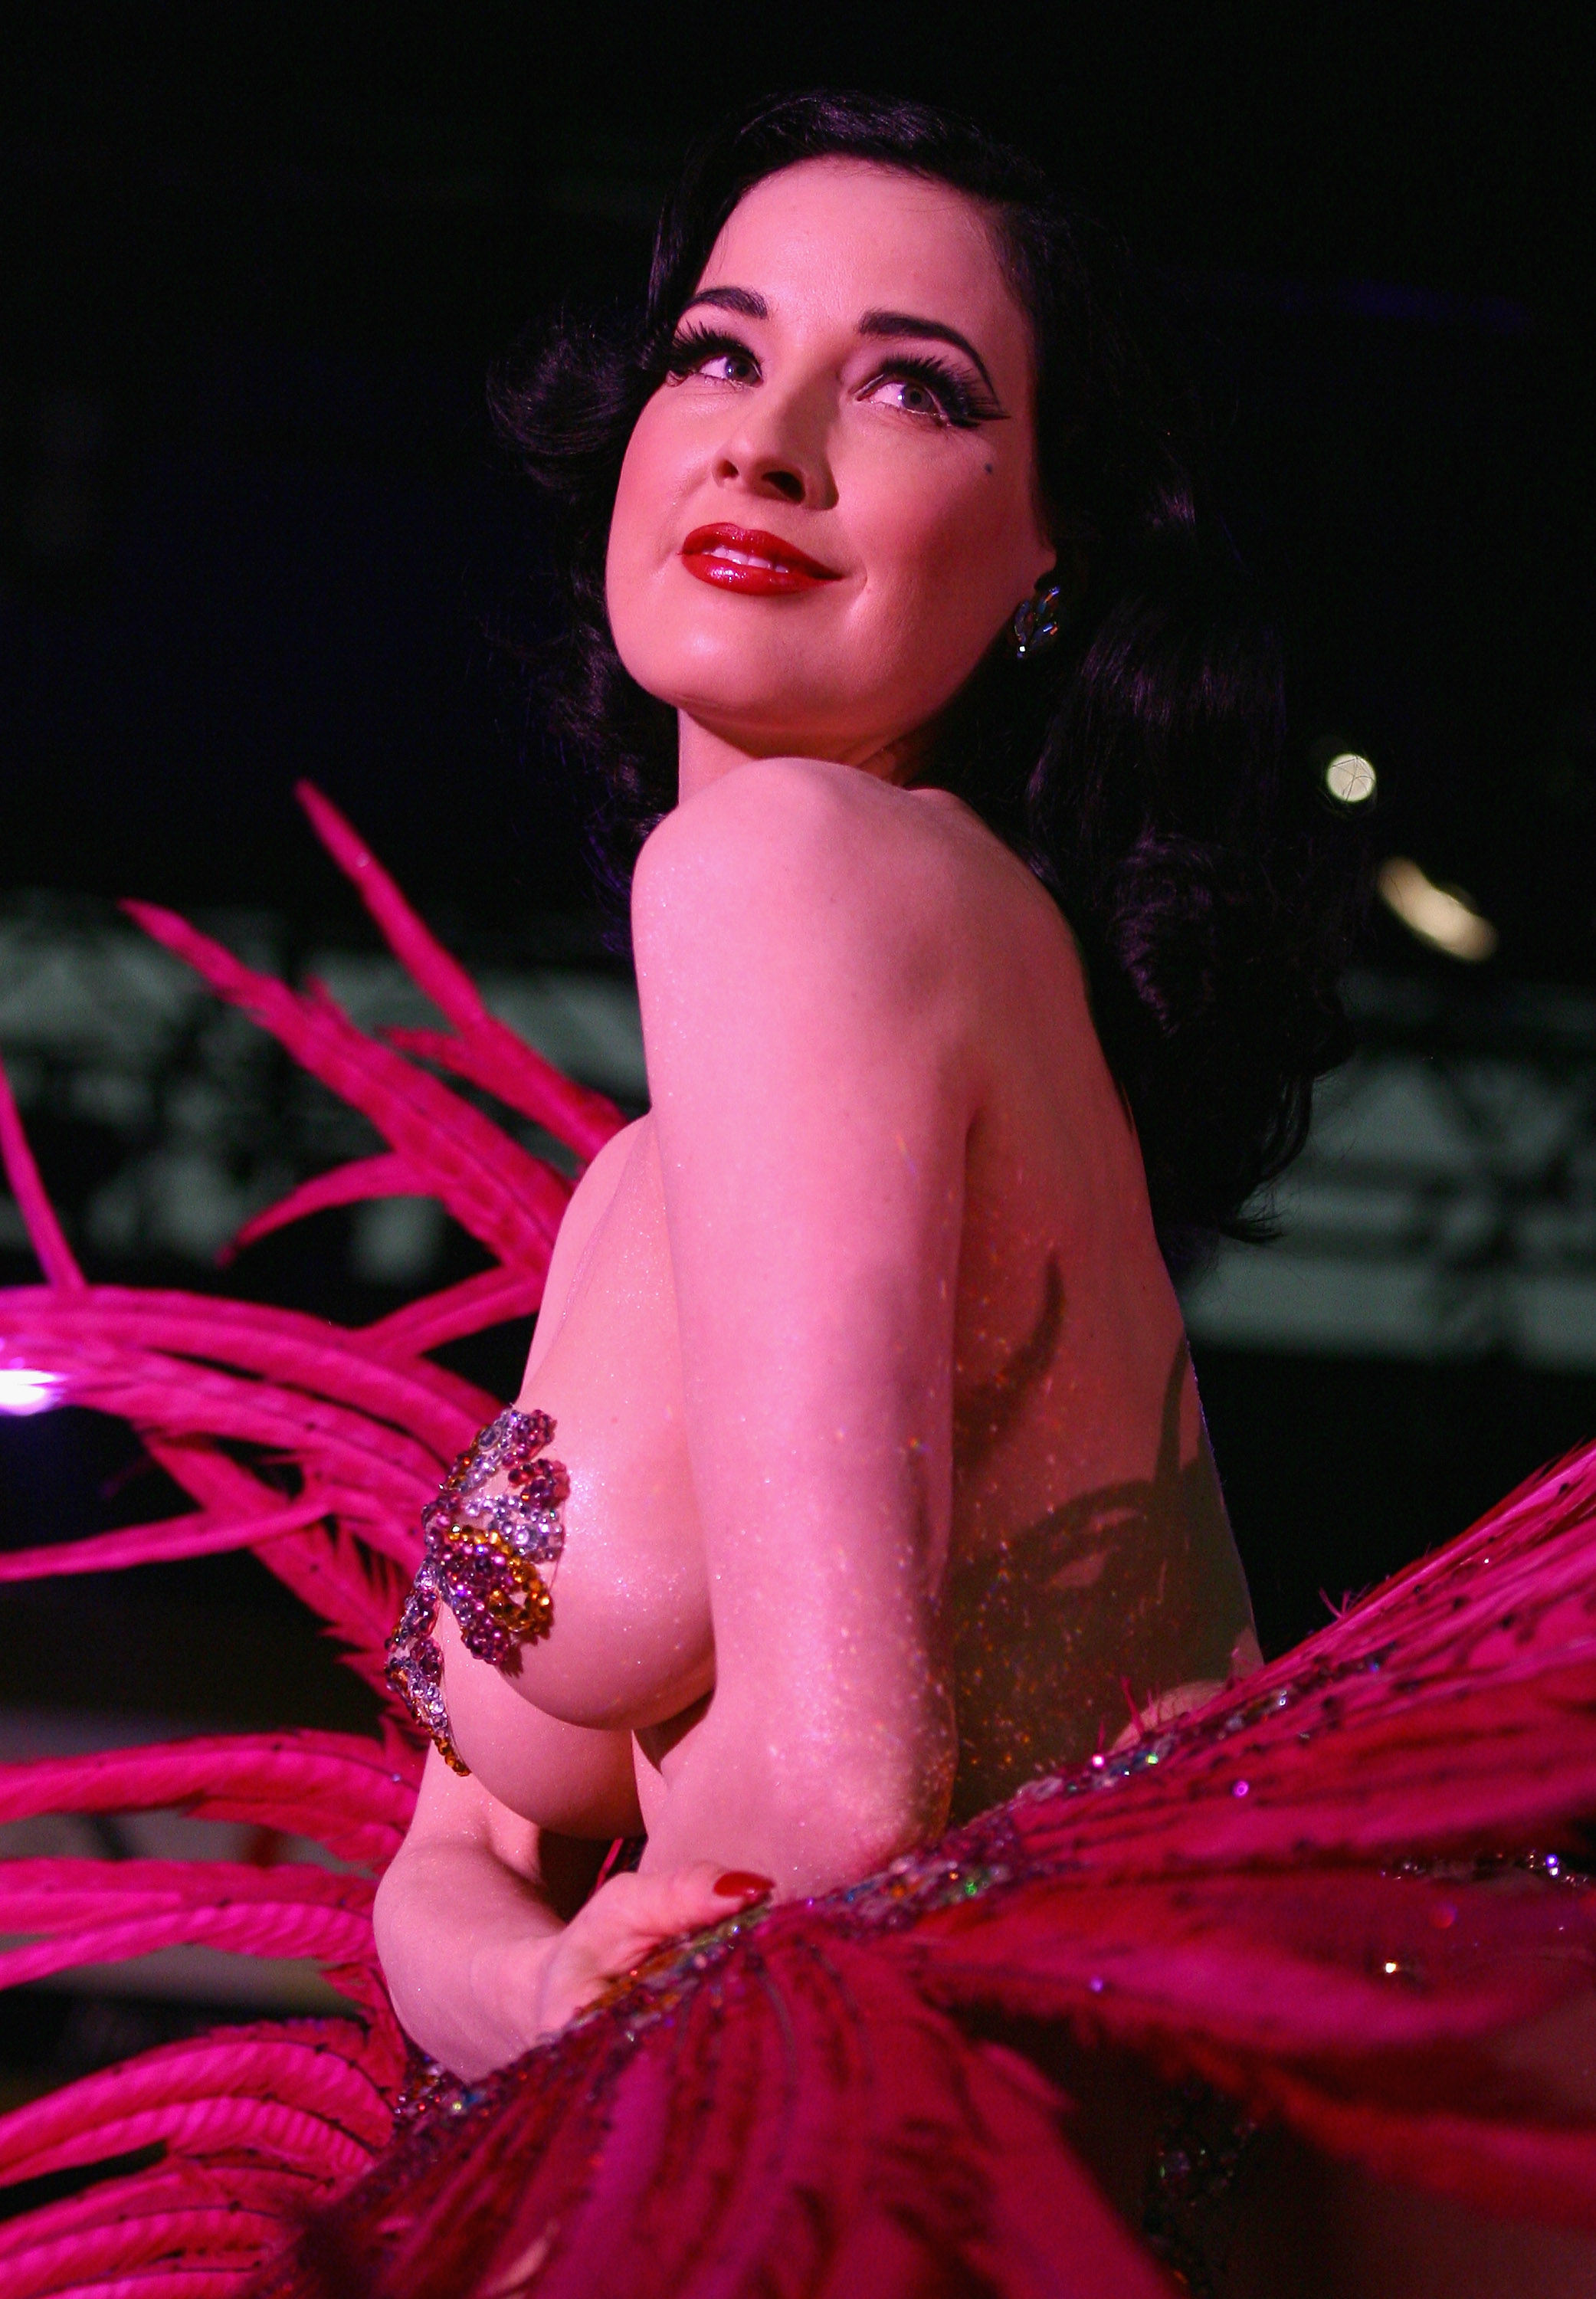 41945_Celebutopia-Dita_Von_Teese_performs_on_stage_at_Erotica_2007-13_123_1118lo.jpg